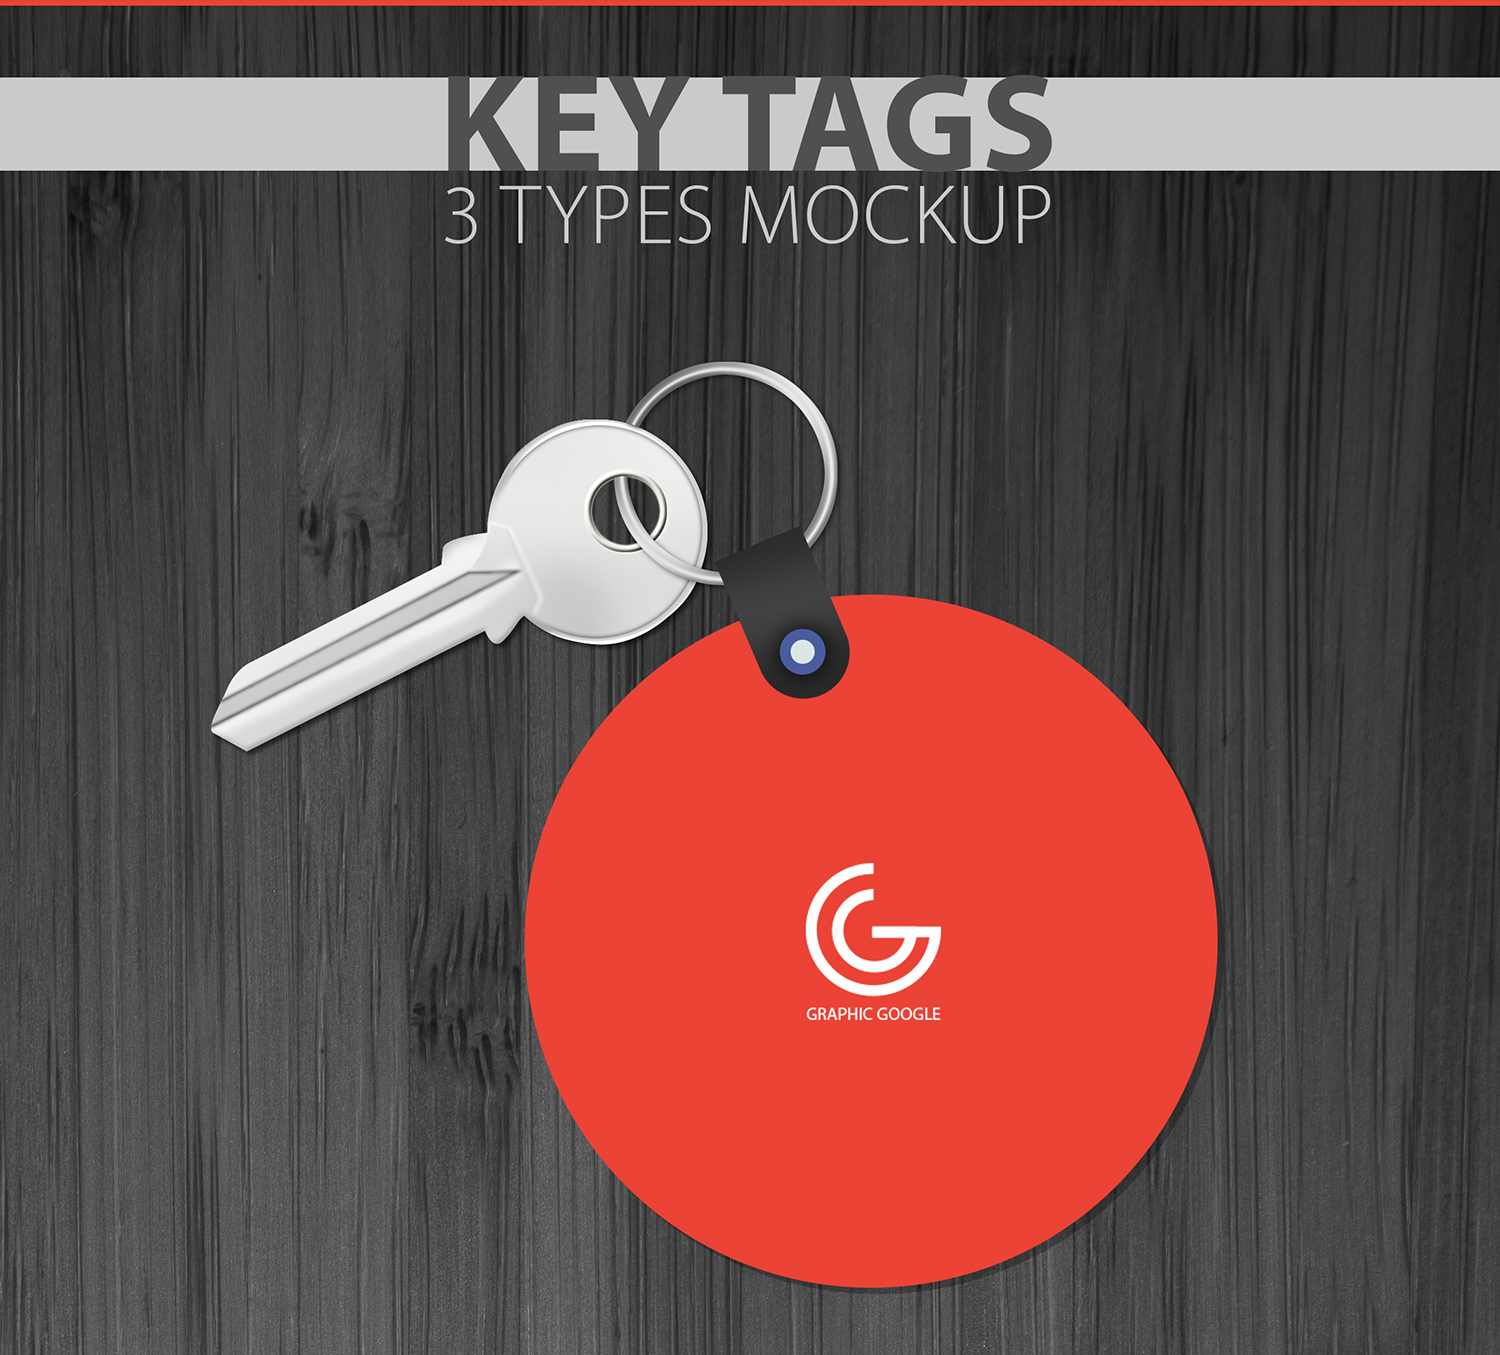 Key Tags 3 Types Mockup-1